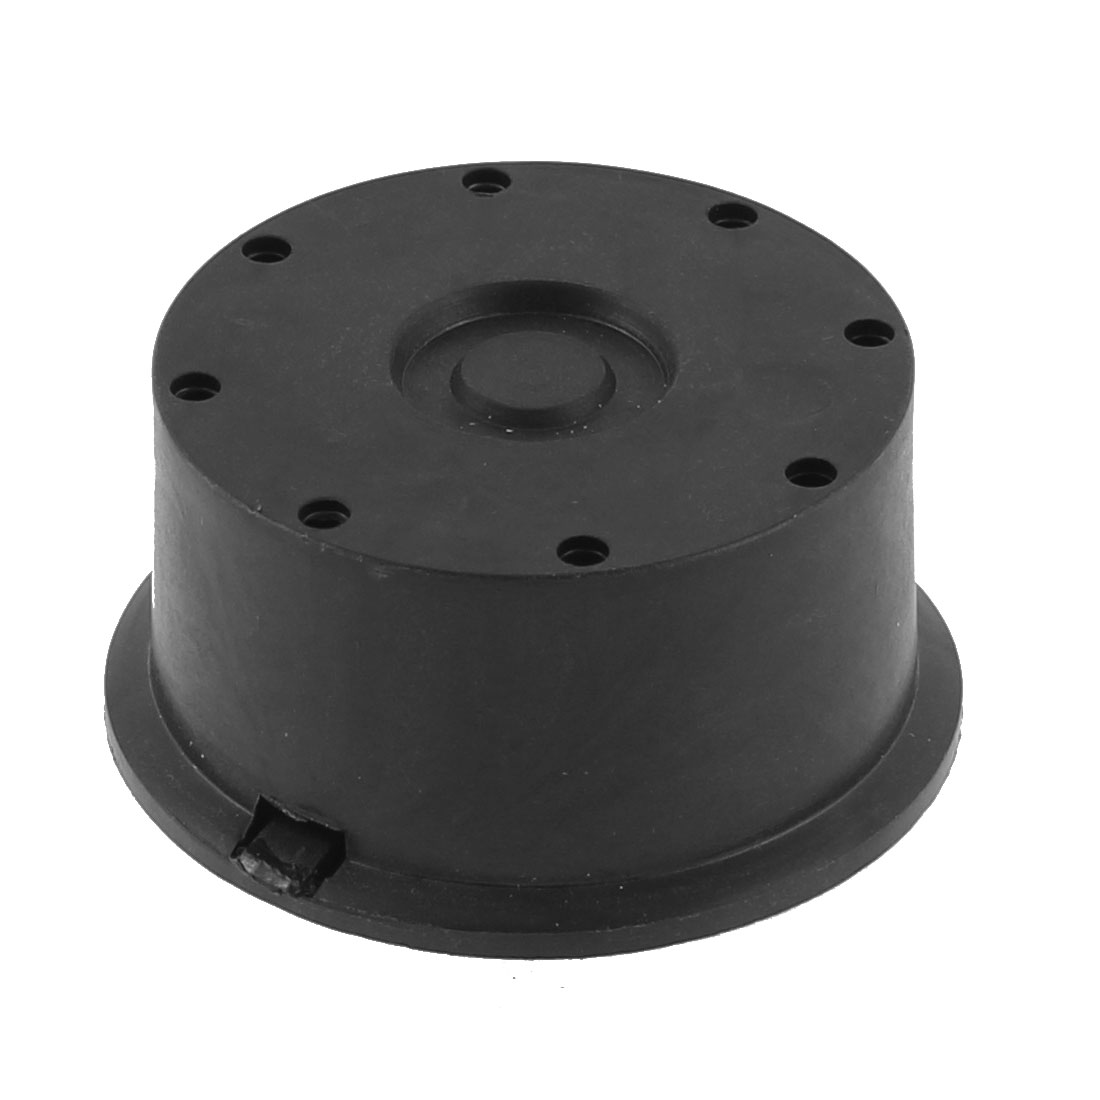 20mm Thread Diameter Black Plastic Admitting Port Air Compressor Intake Filter Silencer Muffler